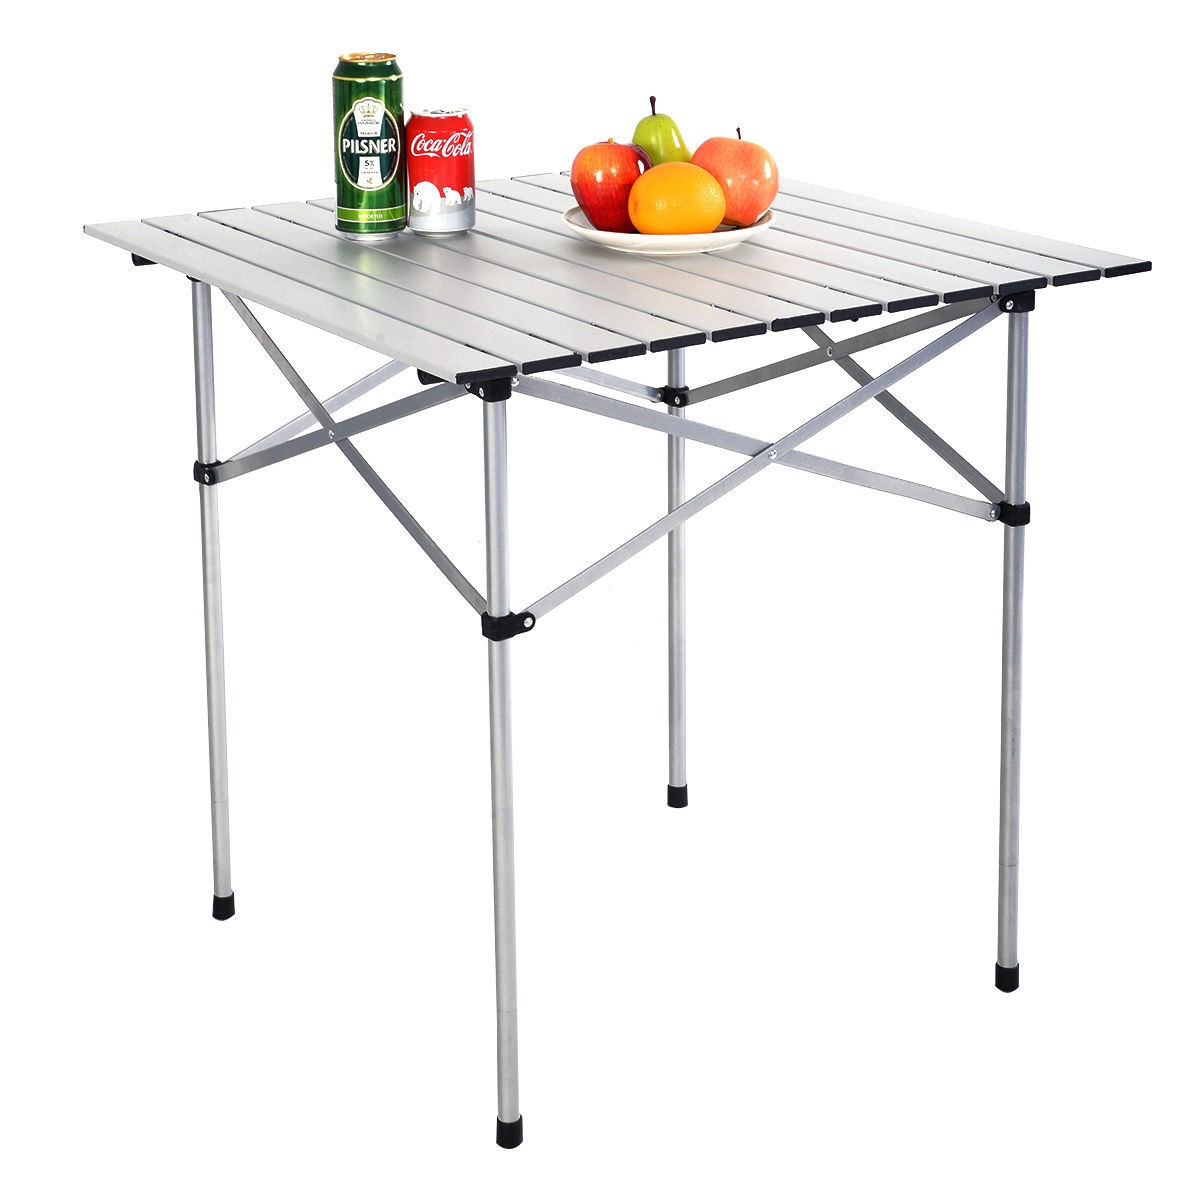 Portable Aluminum Roll Up Table Folding Camping Outdoor Picnic Table Garden Yard (Small)